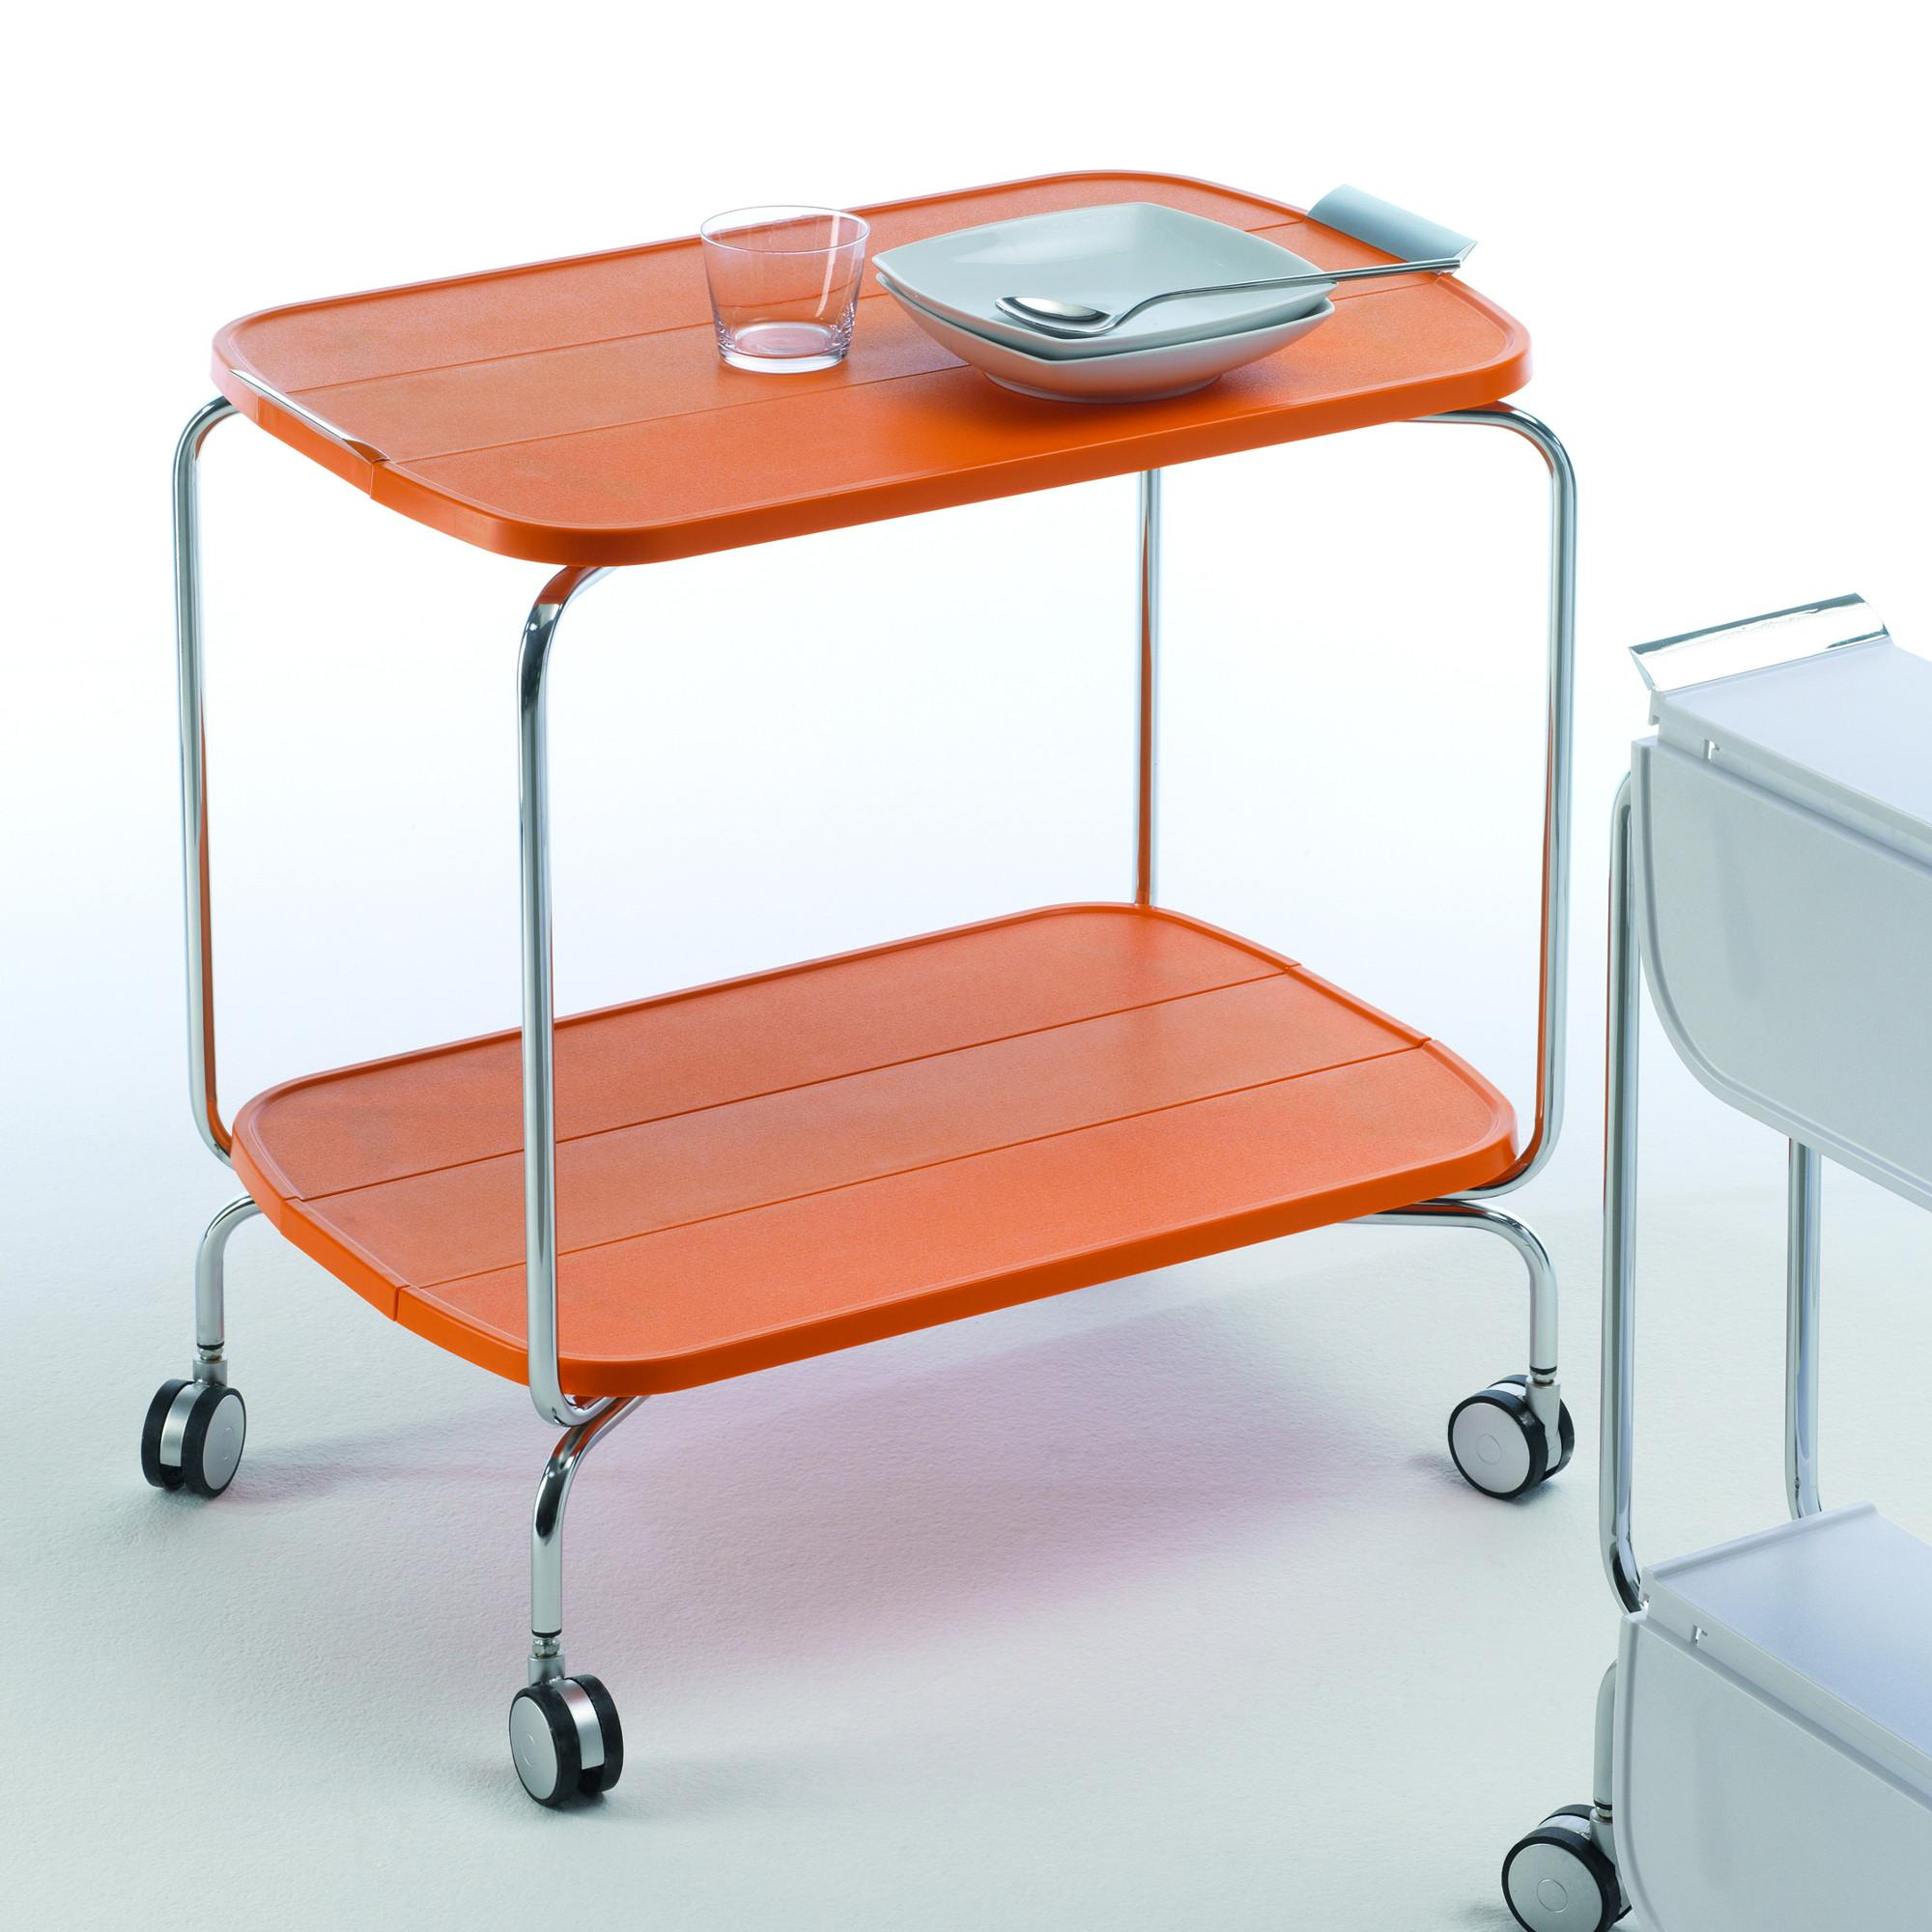 Carrello portavivande richiudibile in abs 69x45x70h cm - Carrelli porta vivande ...